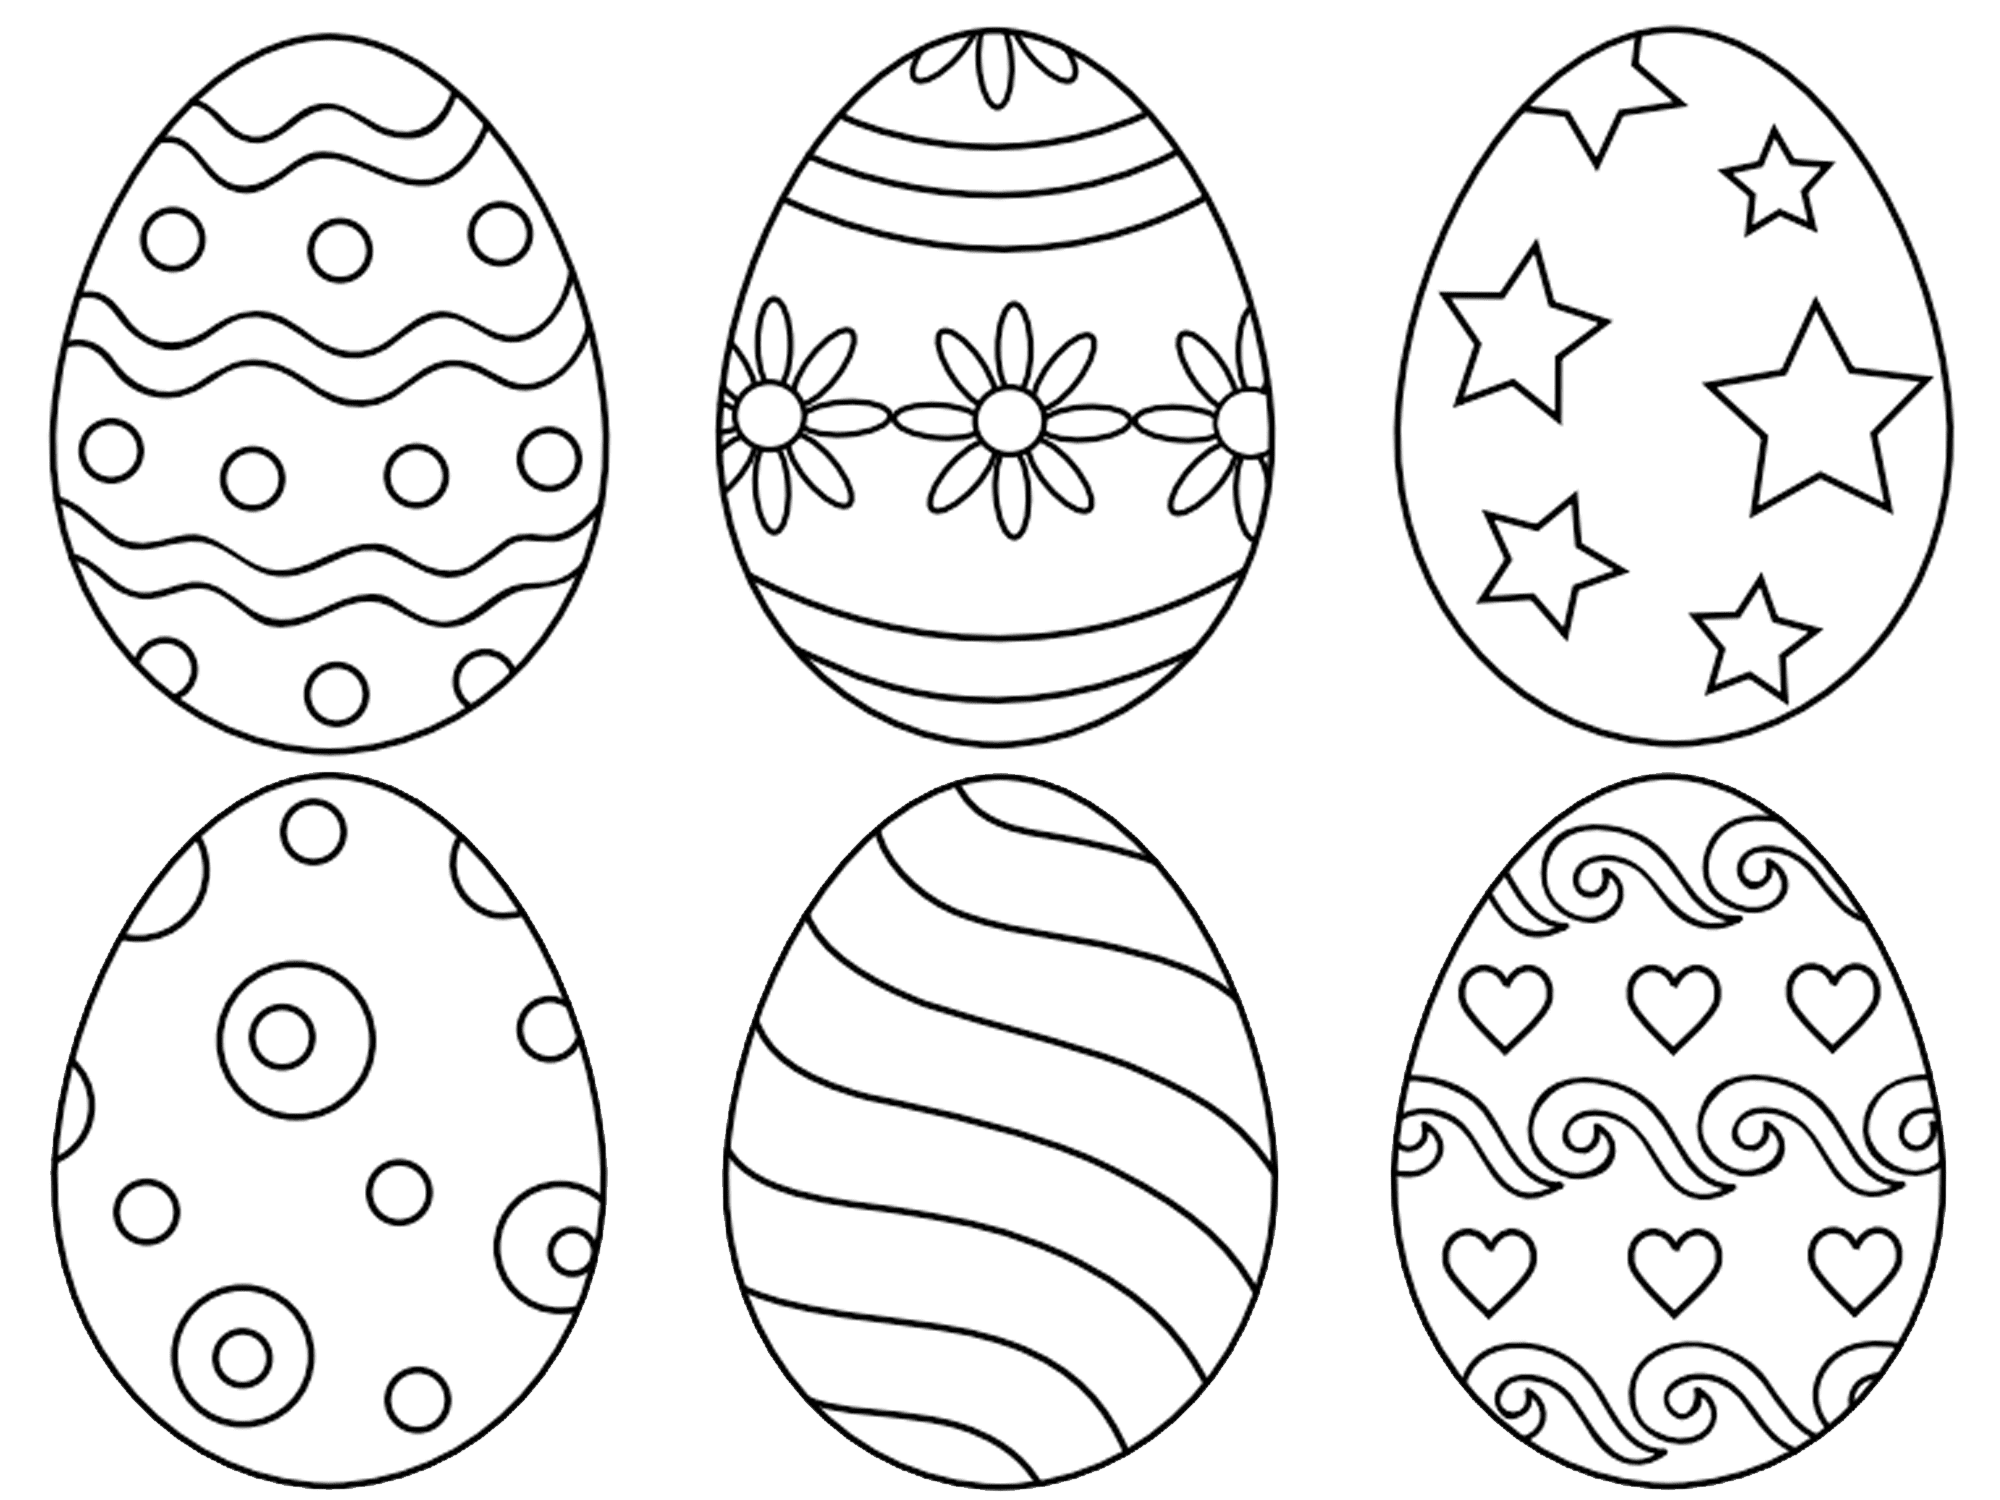 egg coloring page easter adult coloring pages free printable downloads page coloring egg